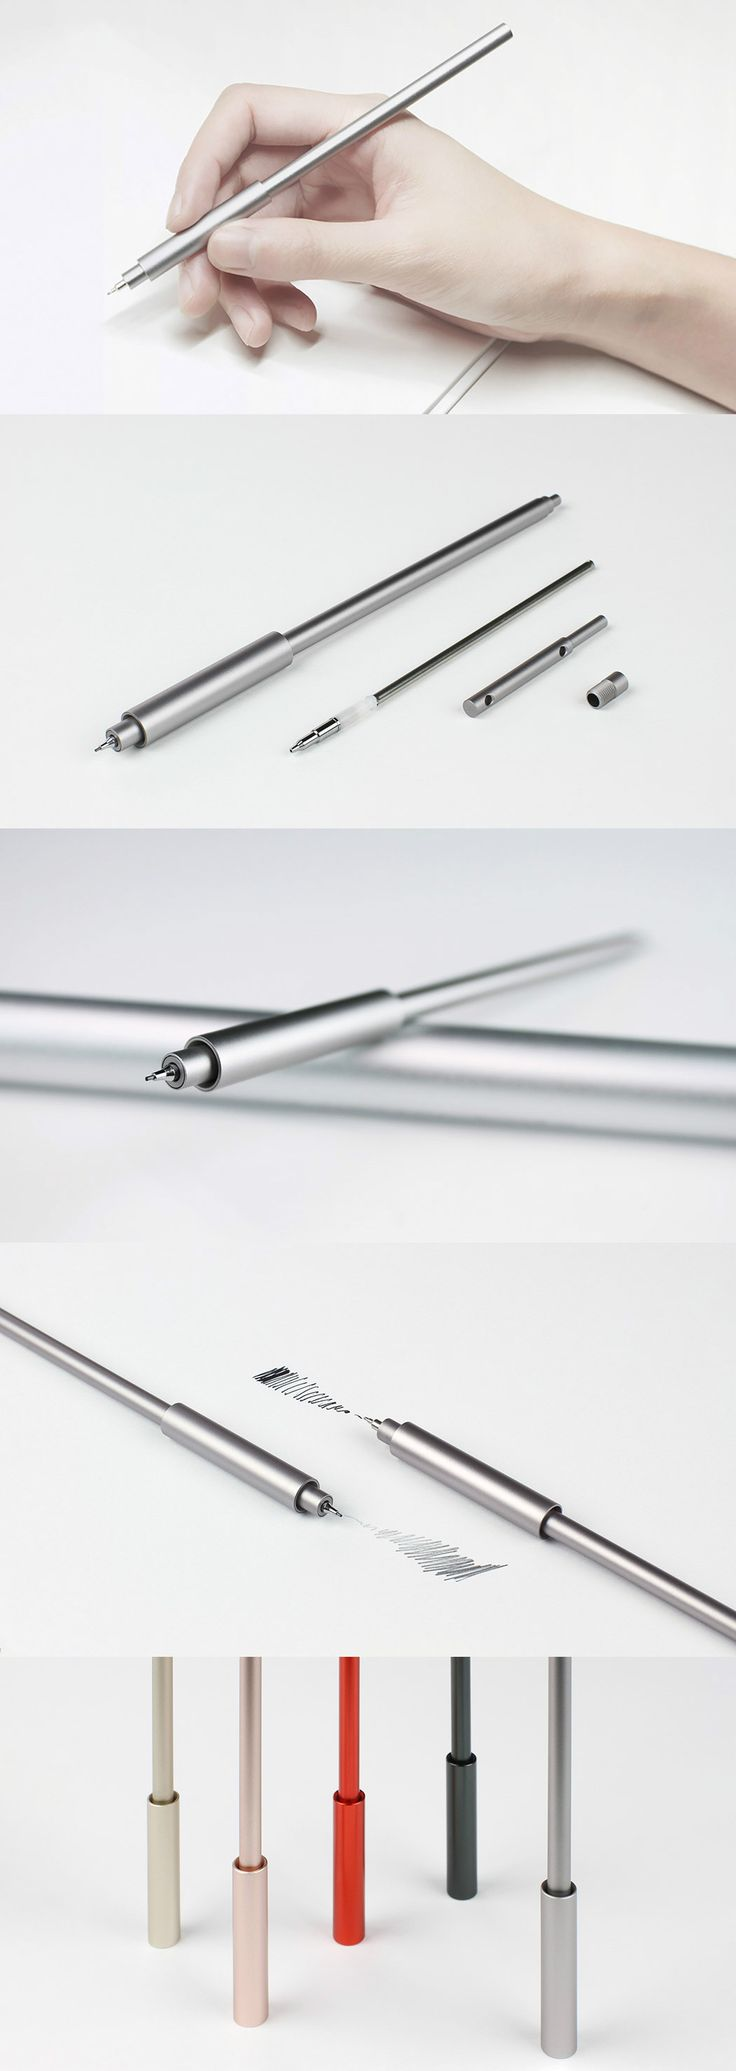 The Uno pen may be one of the most minimal on the market but it doesn't sacrifice functionality for that less-is-more look. Read Full Story at Yanko Design